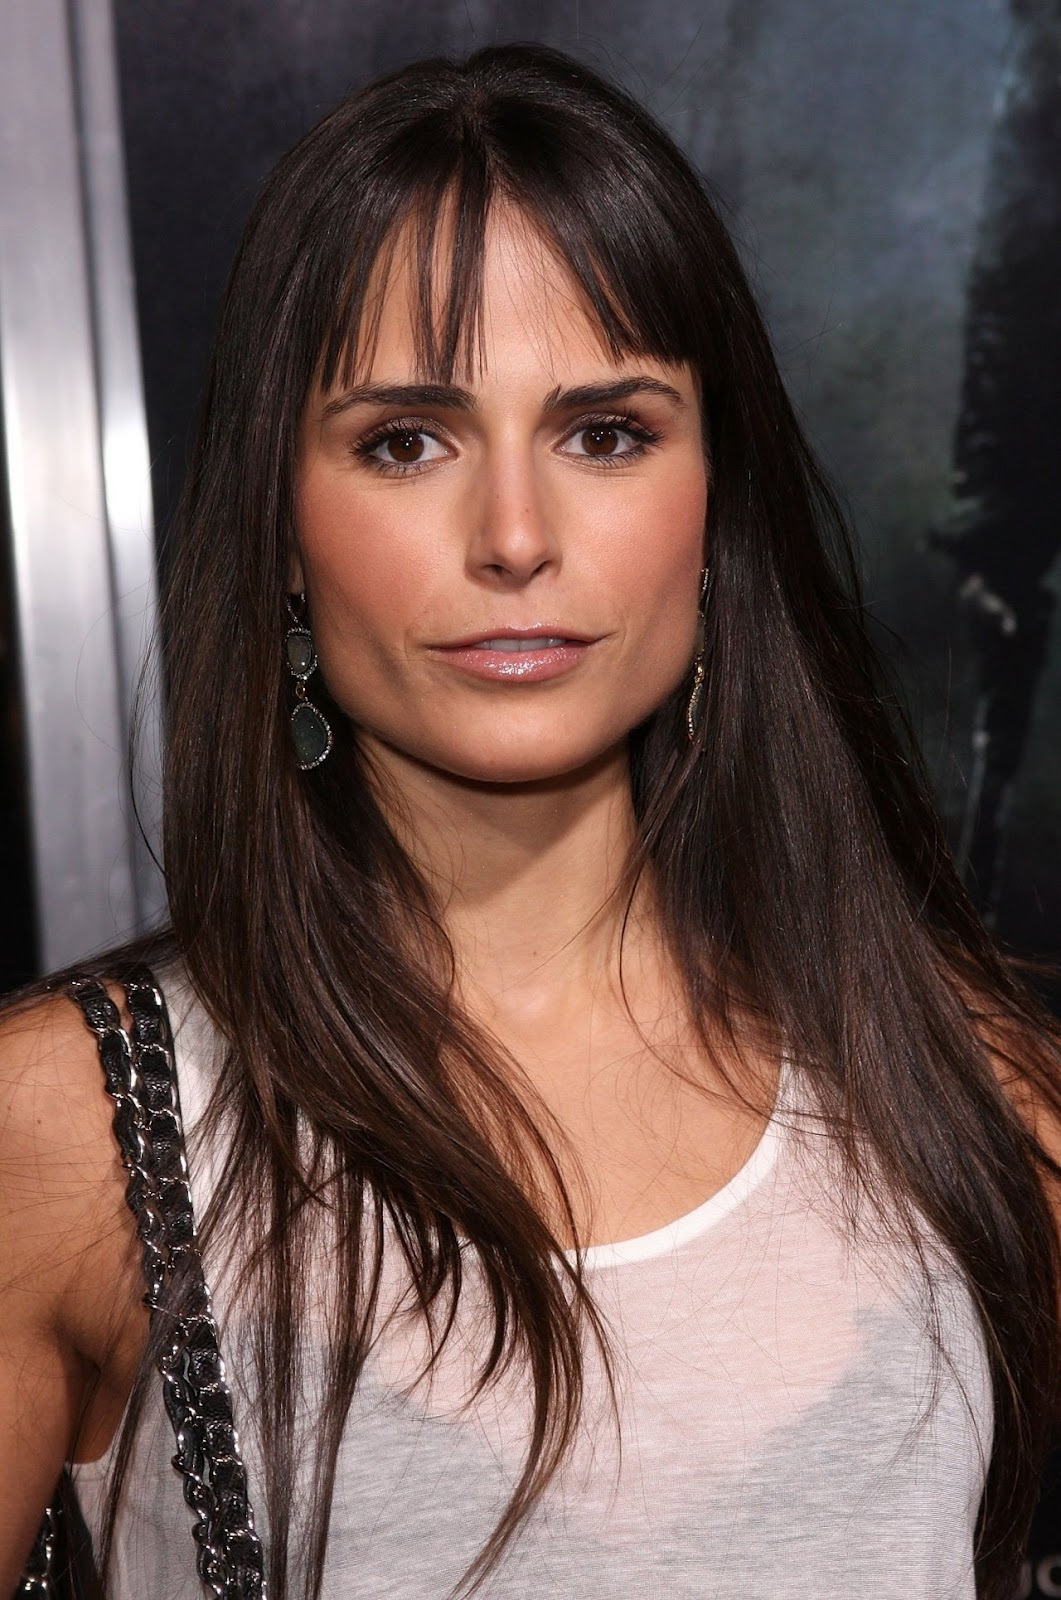 Fast Sports Cars Wallpapers Jordana Brewster Hd Wallpapers High Definition Free